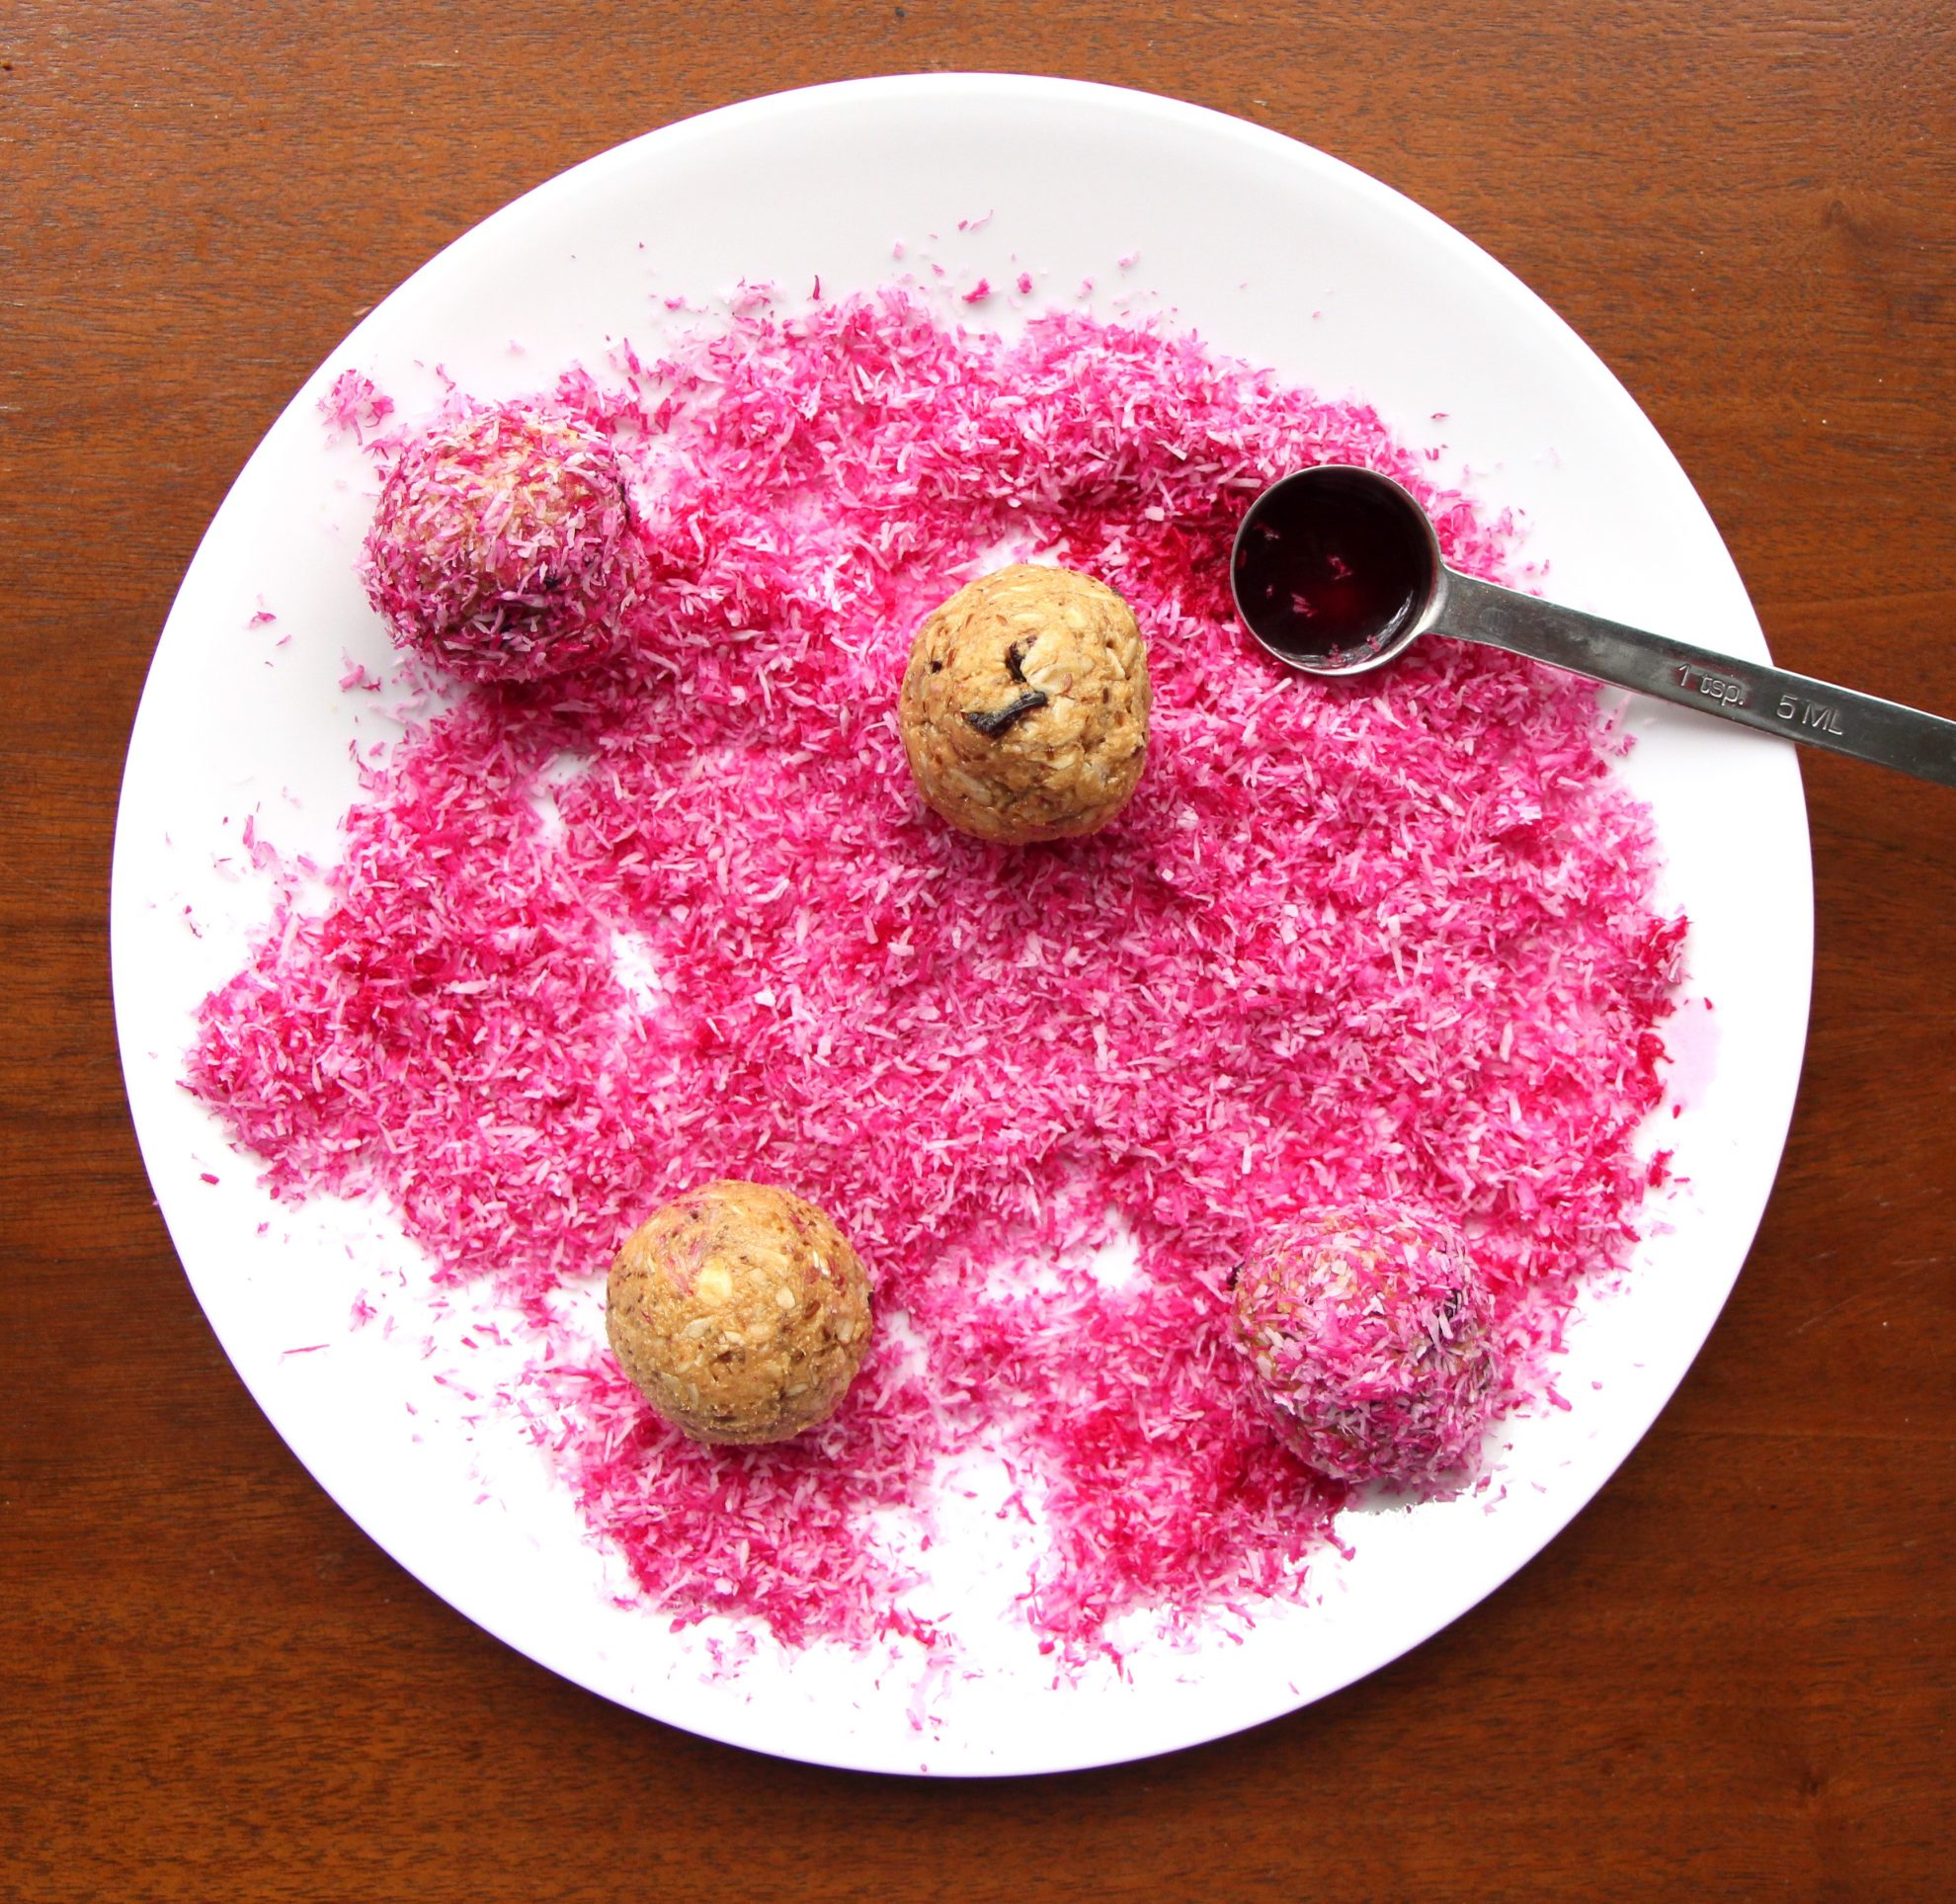 Plate with Naturally Pink Protein Snacks and naturally pink coconut flakes dyed with beet juice. Fun gluten-free snack for kids!